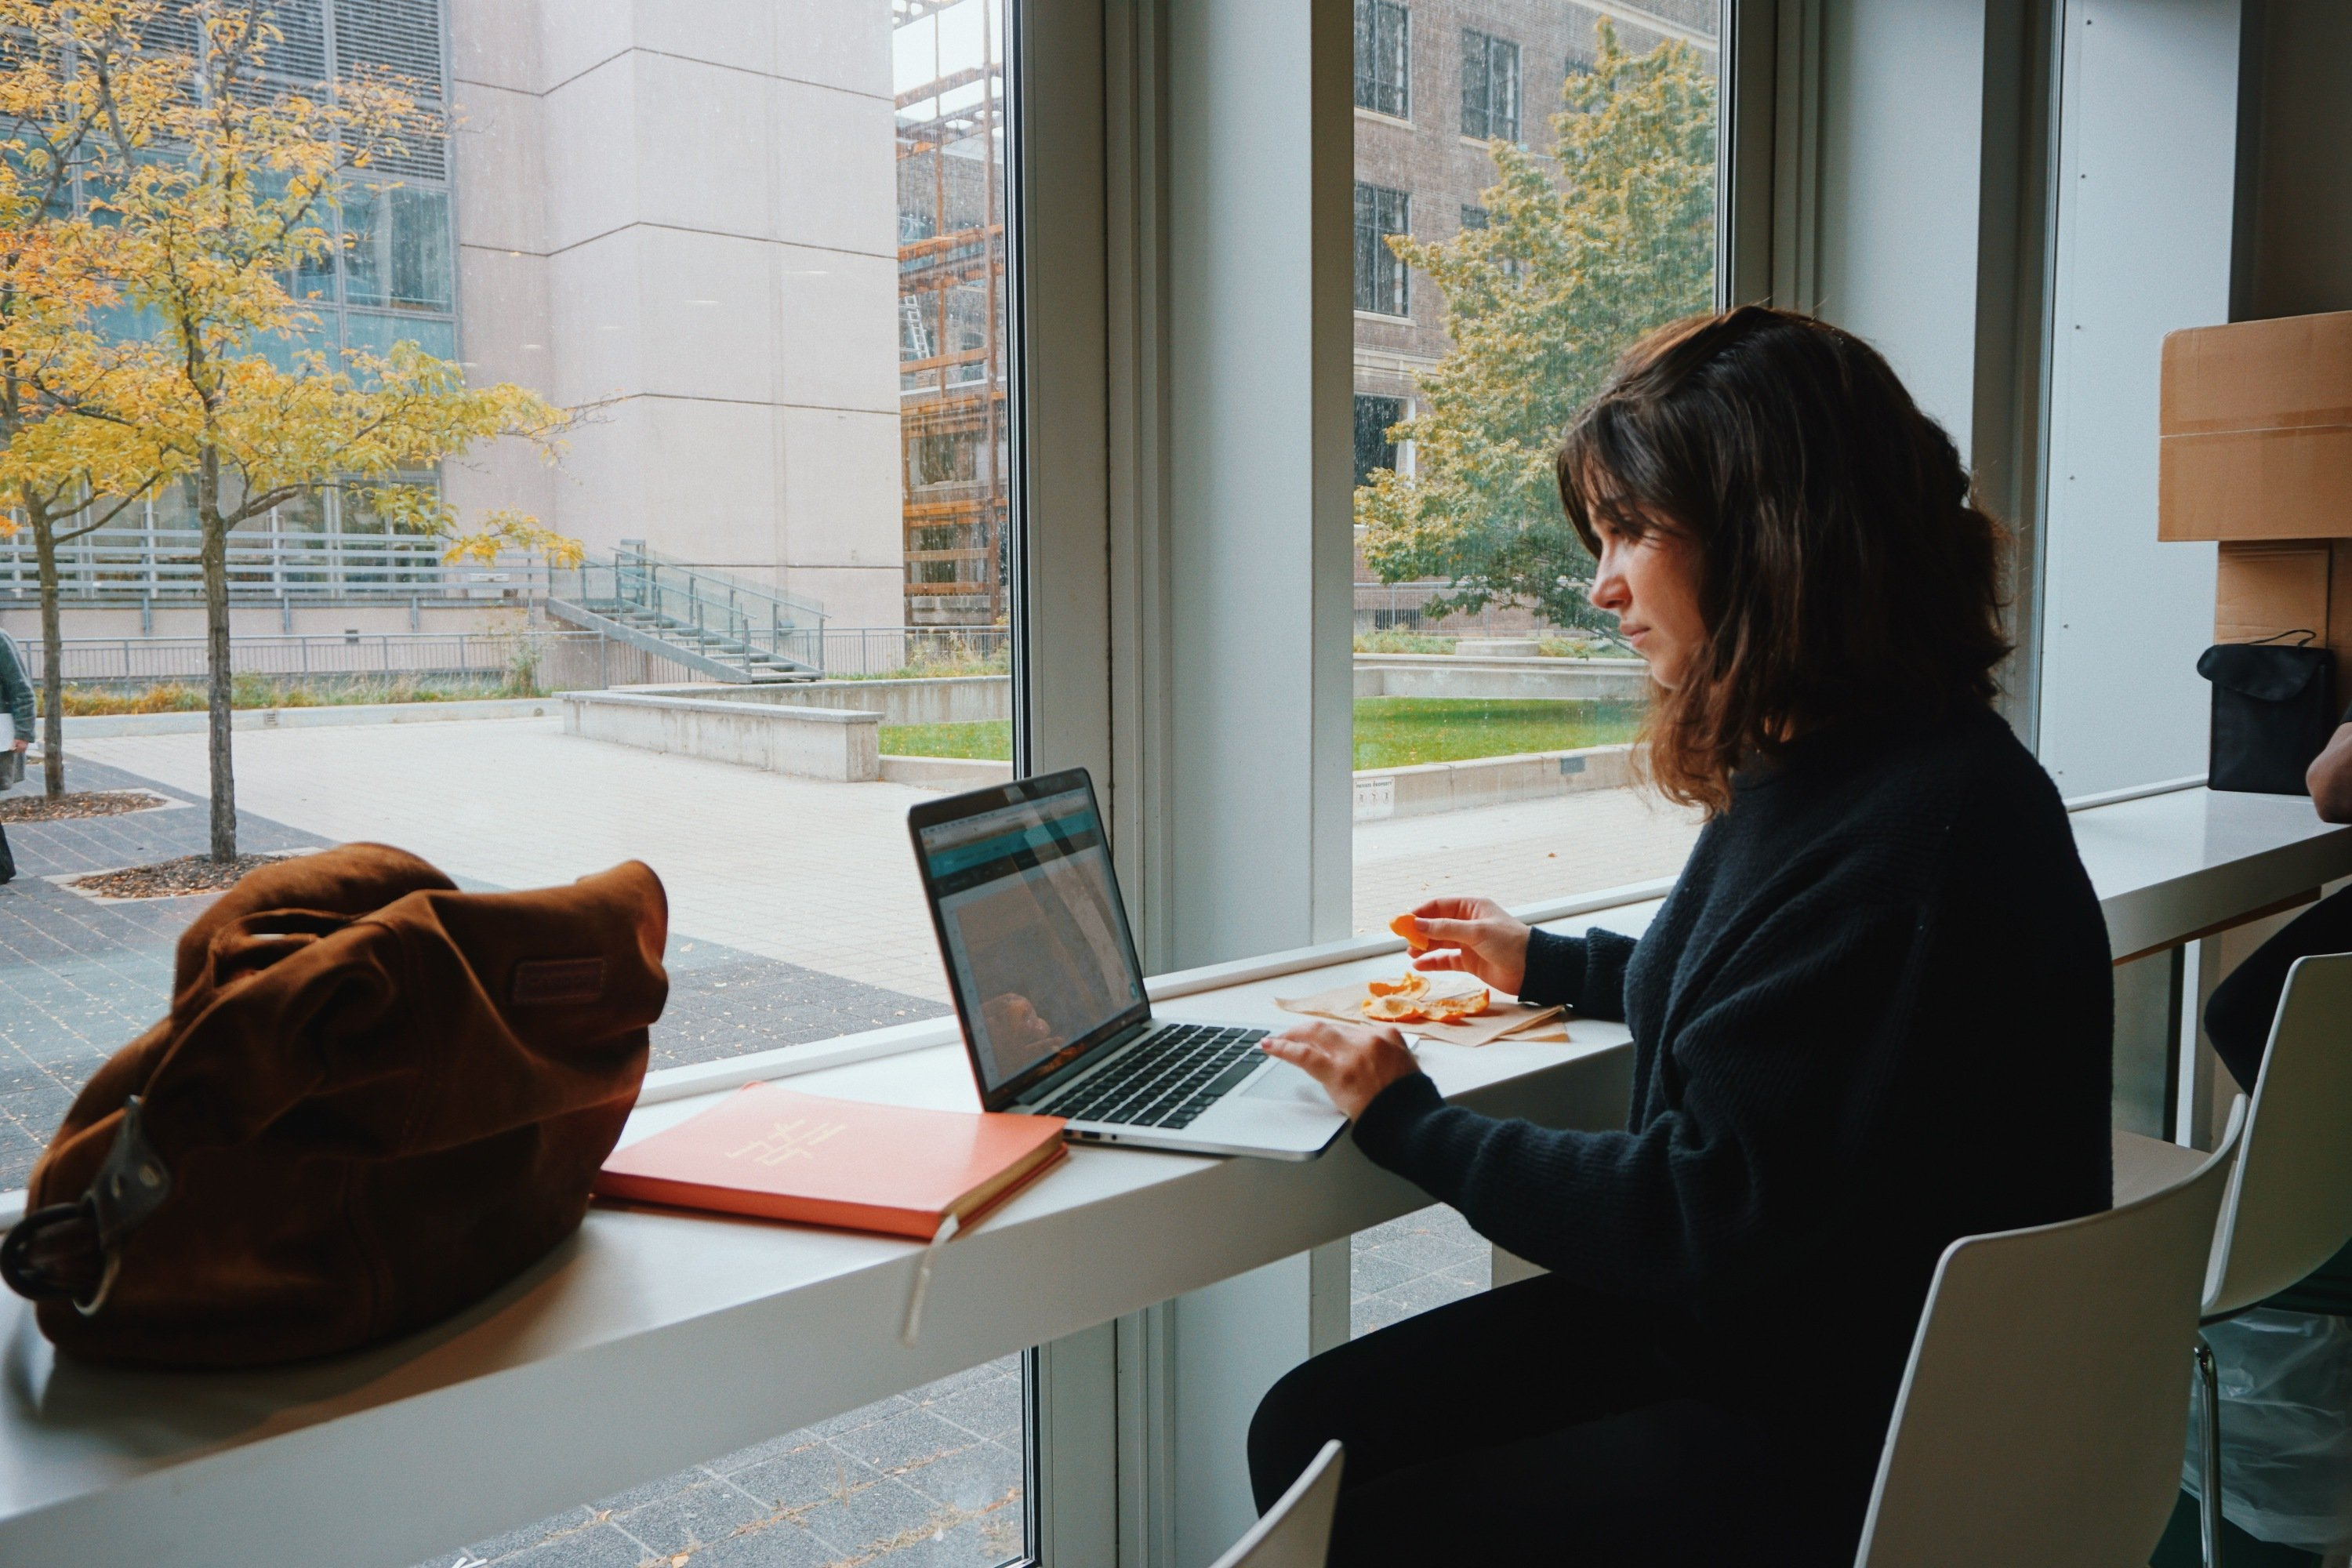 Female student sitting next to a window working on her laptop